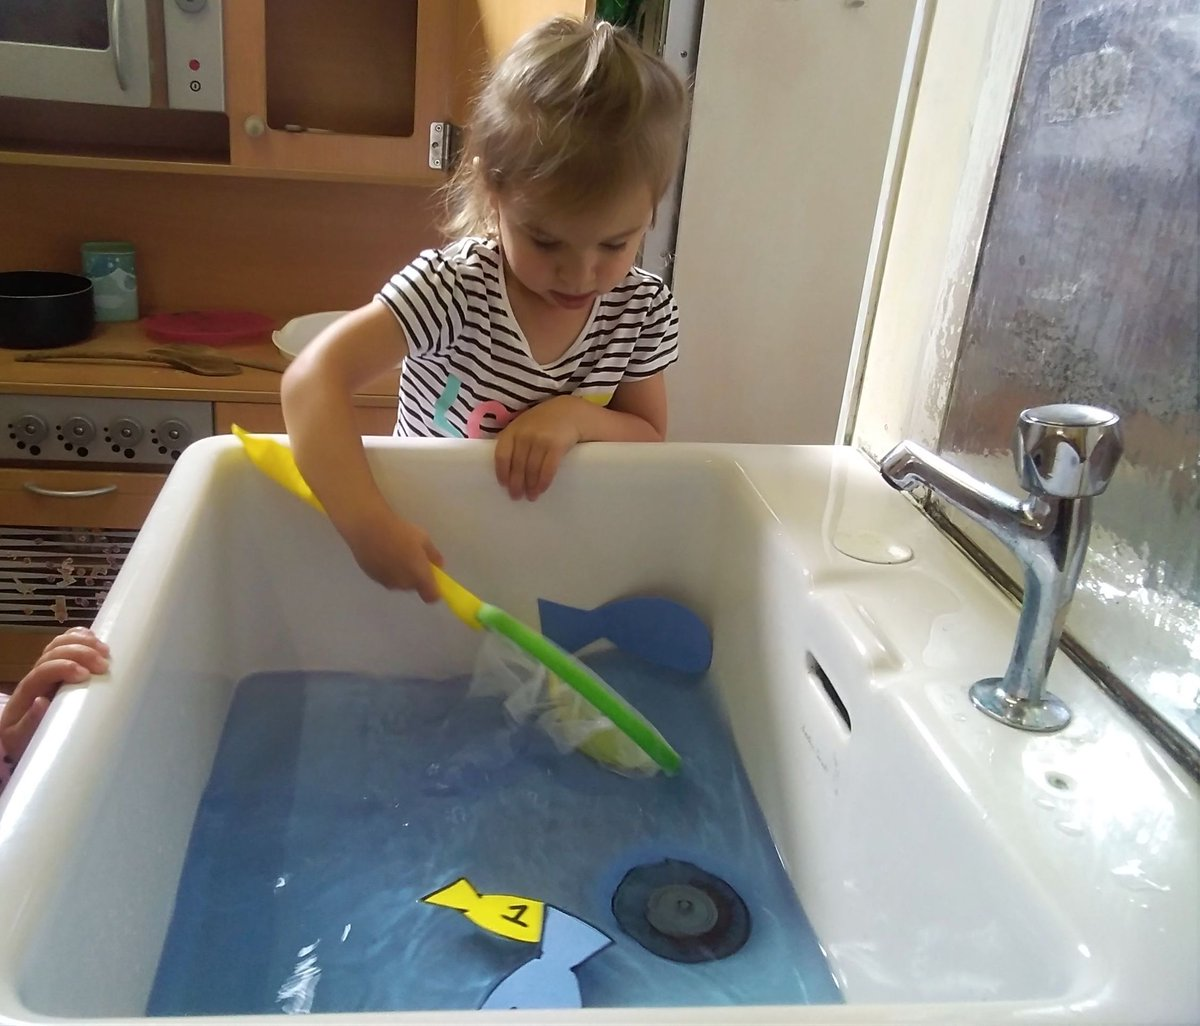 small child fishing in the sink